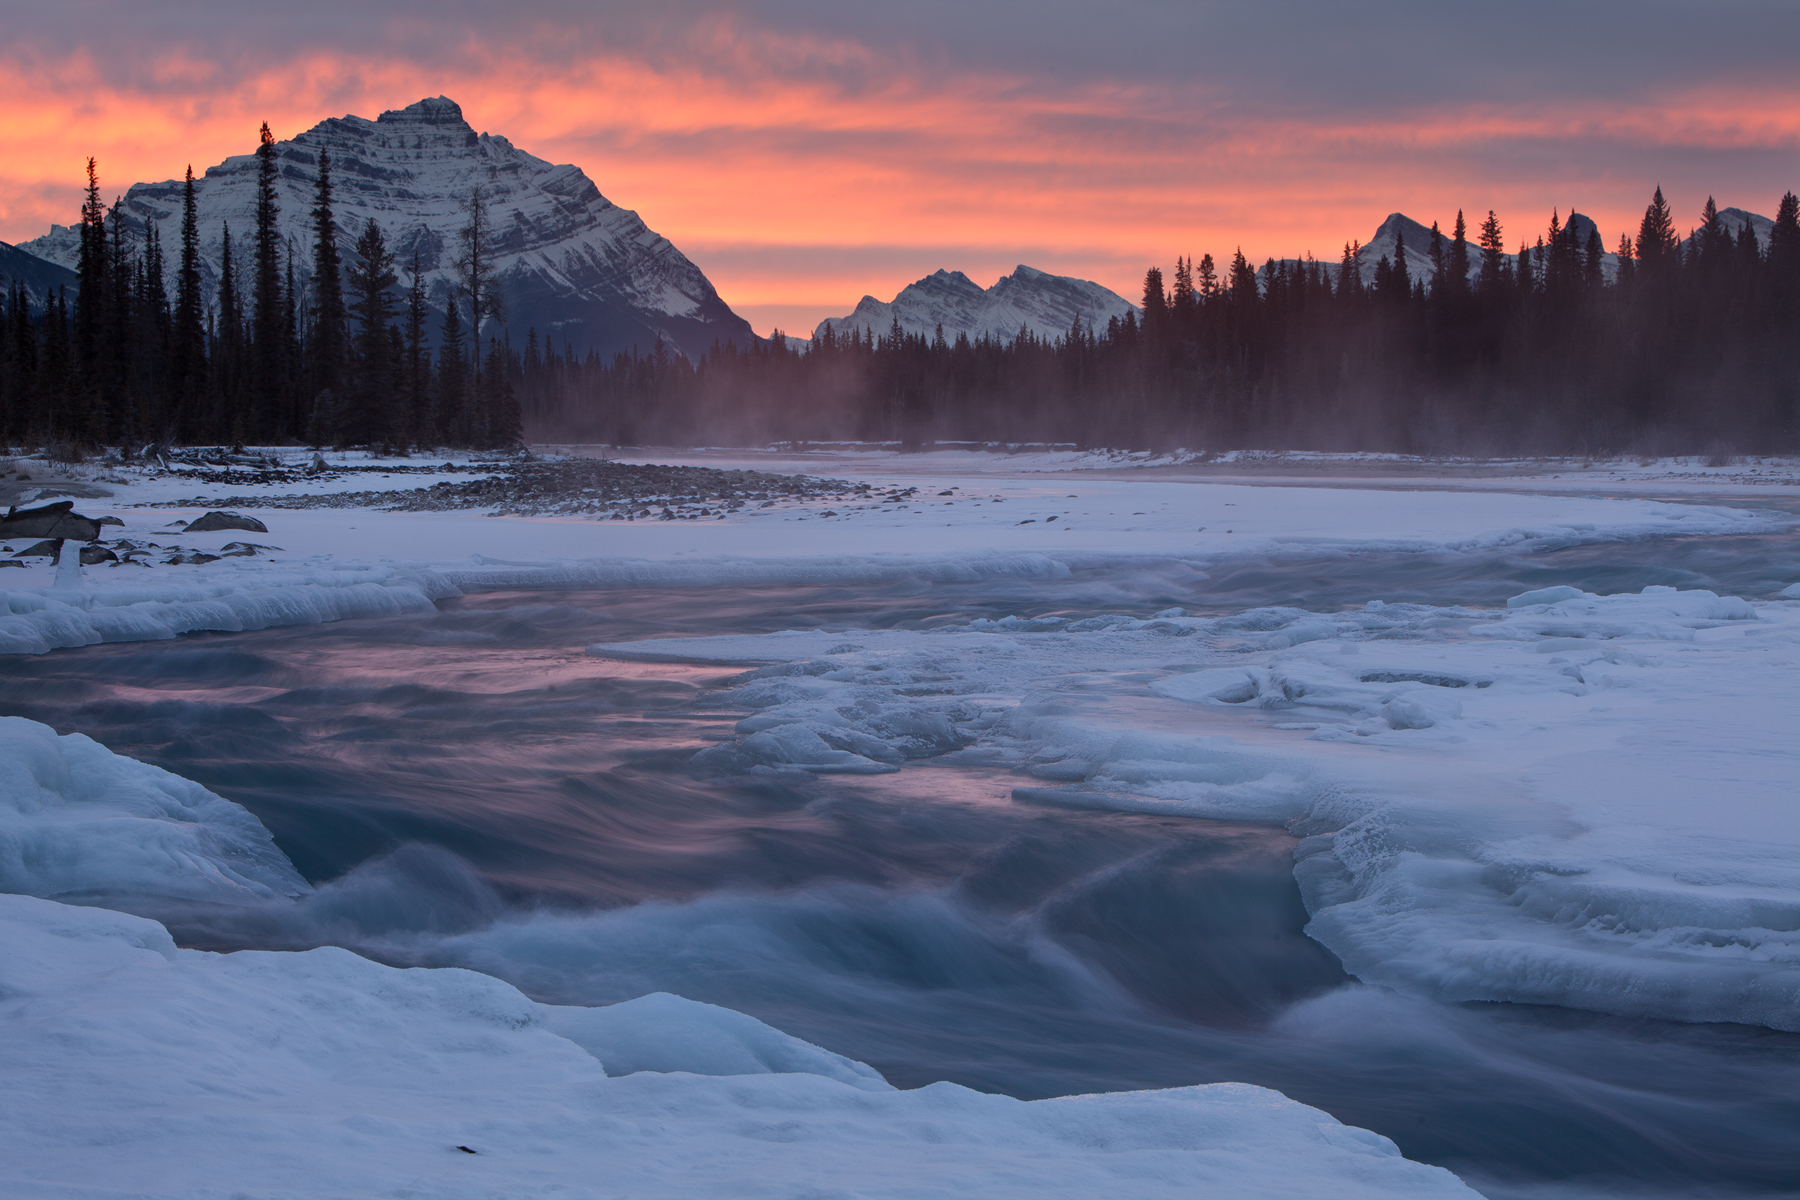 Sunrise on the Athabasca River in Jasper National Park, Canada.  Image ©Connor Stefanison